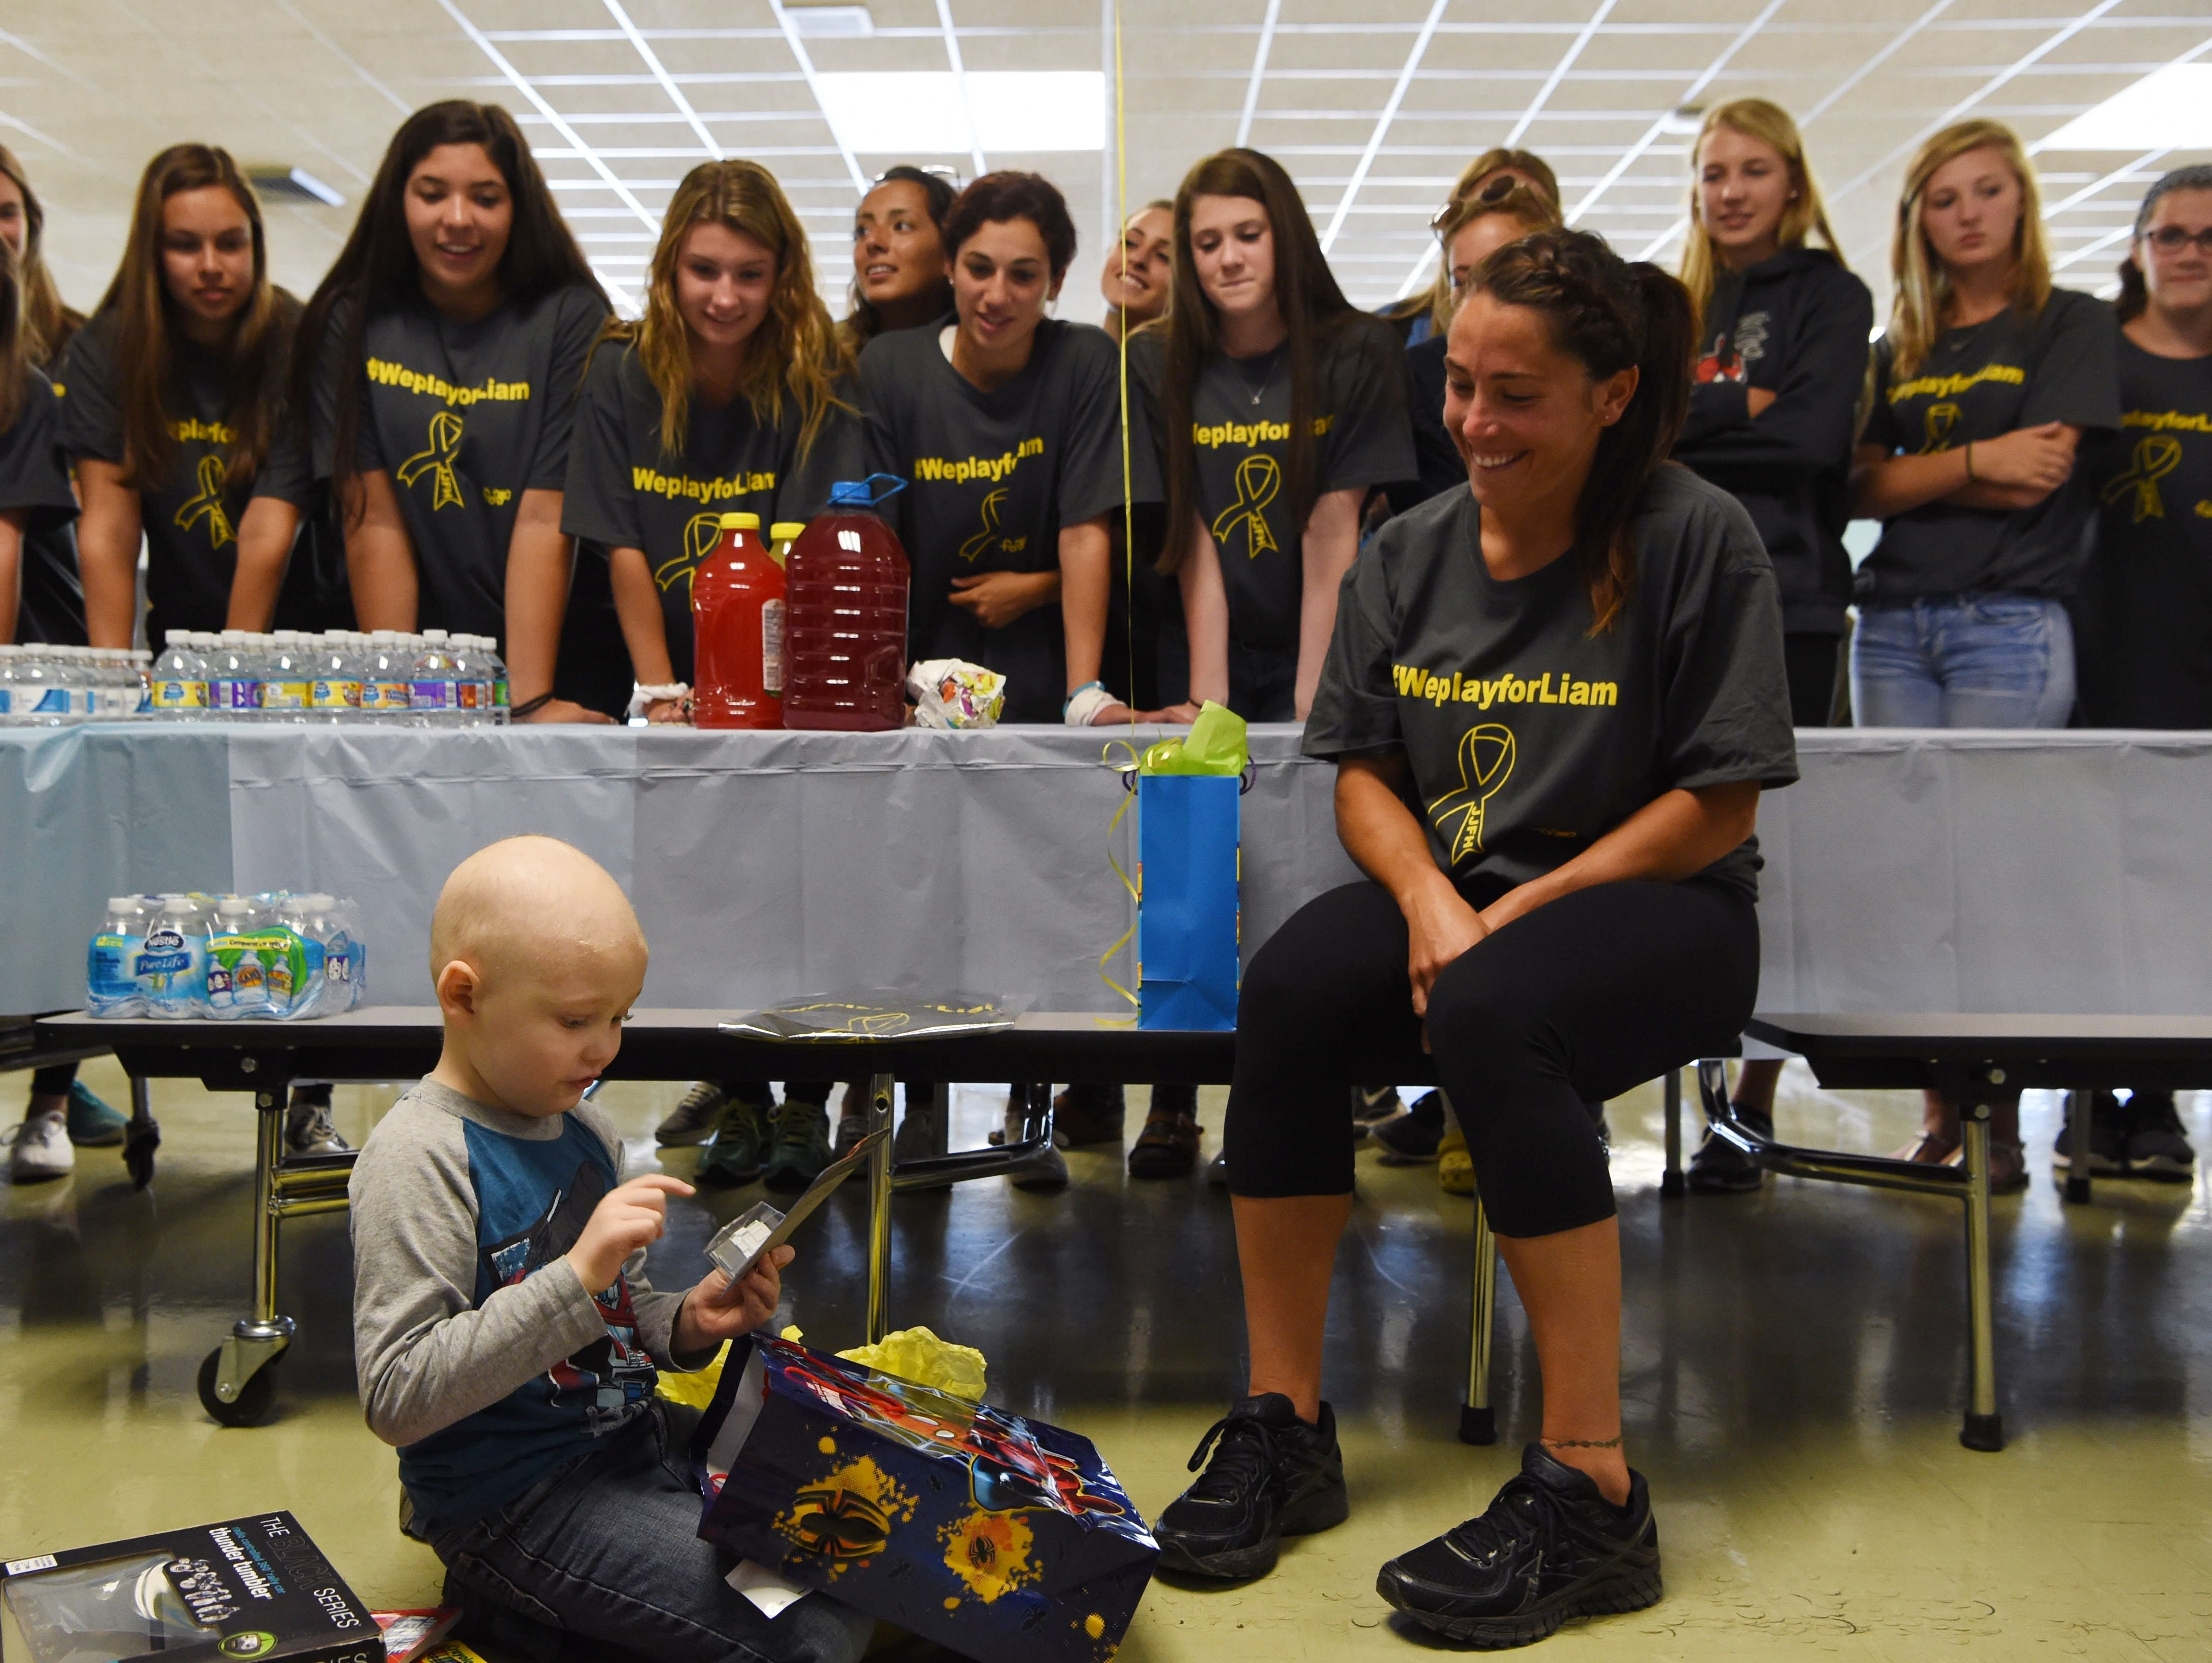 """Liam Craane, 5, left, who is battling pediatric cancer, opens presents given to him by the John Jay field hockey team. Liam was """"adopted"""" by the team through a program created by the Friends of Jaclyn Foundation. Sitting at left is field hockey coach and physical education teacher Kristen Perry."""